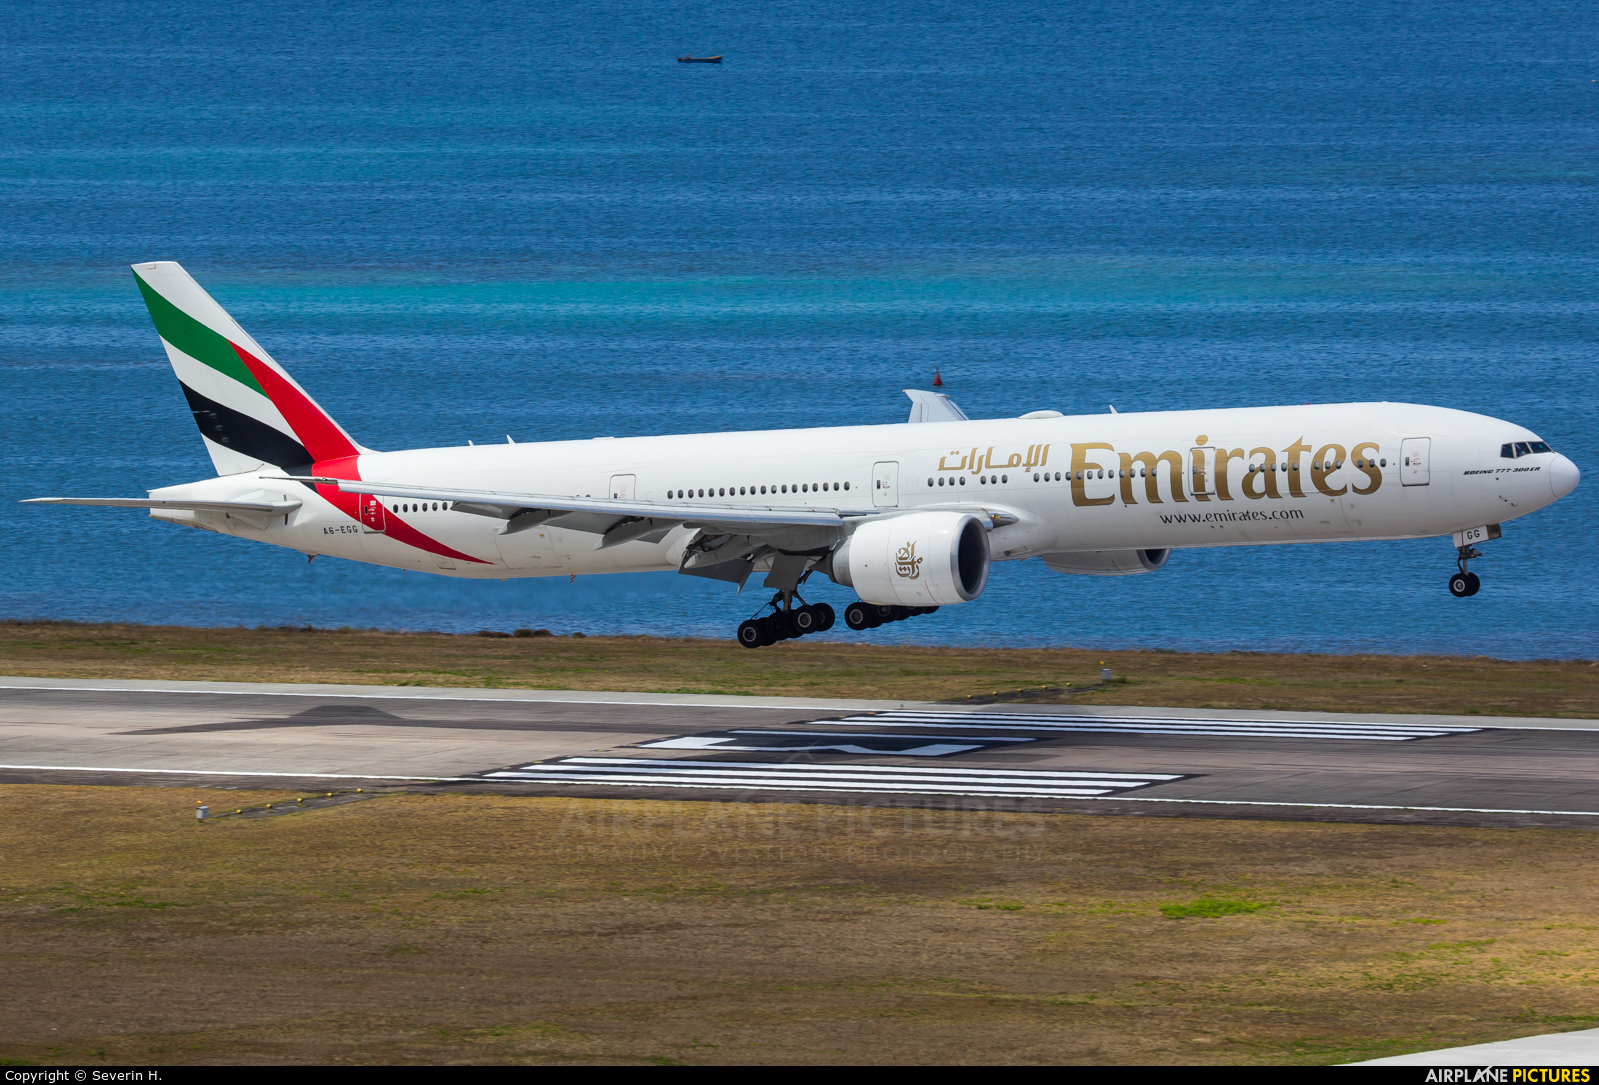 Emirates Airlines A6-EGG aircraft at Mahe Intl